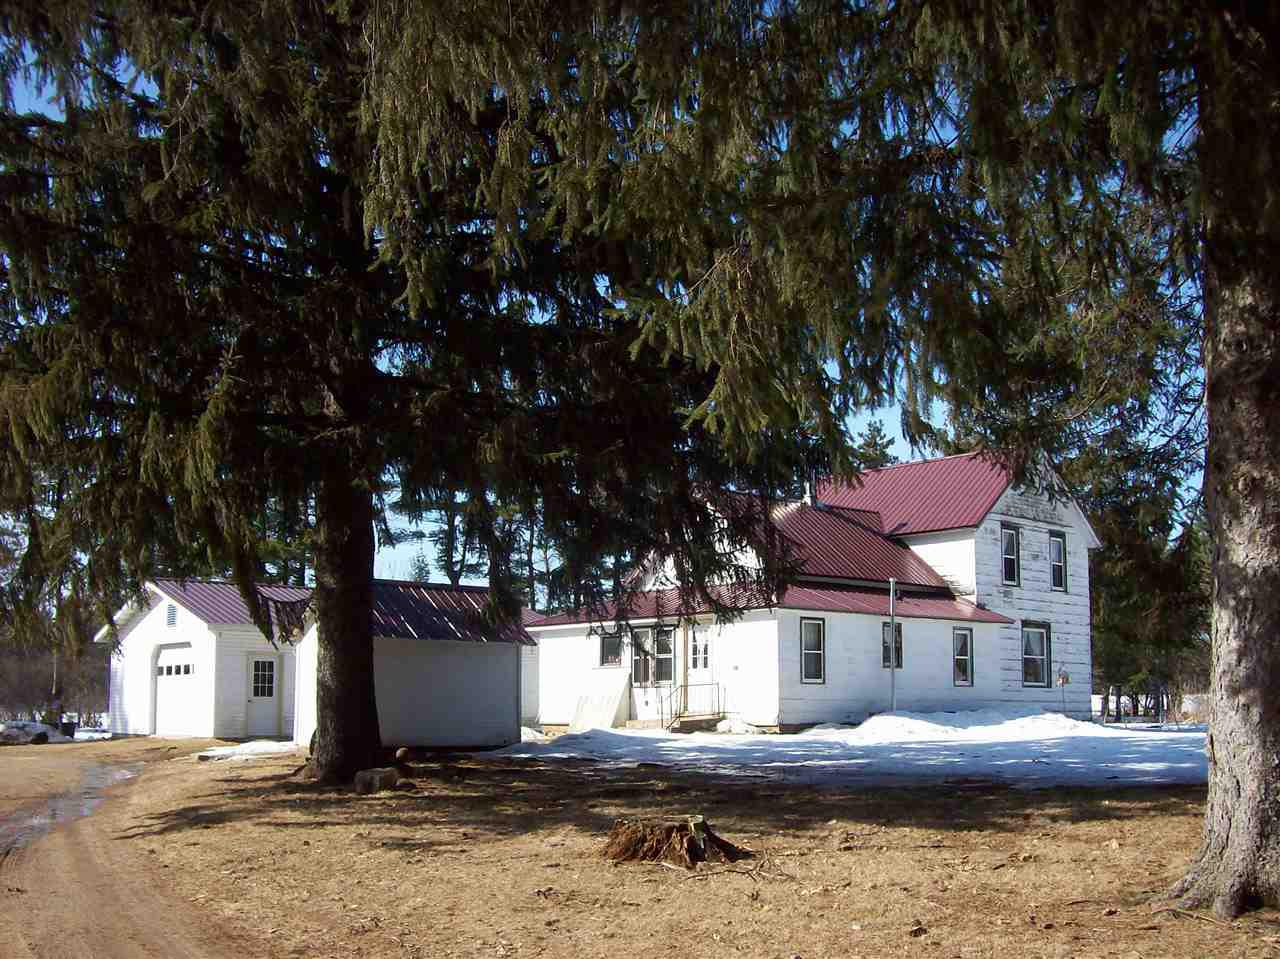 Country living! you have it all here, 16 acre farmstead large 4-5 bedroom farm house, 46 x 36 2 story barn, 36 x 24 2 car detached garage, mostly wooded with great deer hunting. Home is currently set up for an Amish family, no elec. power, everything runs on LP gas, LP Frig, LP Stove, LP lights, wood stove burns wood, Well pump is run on air pressure, good well and septic. Great place for horses or any live stock, chickens, small animals, large animals, exotic animals, pets, dogs, cats whatever you like. Circle around driveway for easy in and out. The home has a metal roof, metal siding,  16 x 14 wood shed. private setting and close to I 39 for easy commute to Stevens Point, Madison, Wis Dells, Wautoma Portage and more. Get off the grid plant a garden raise your own food. Close to DNR land